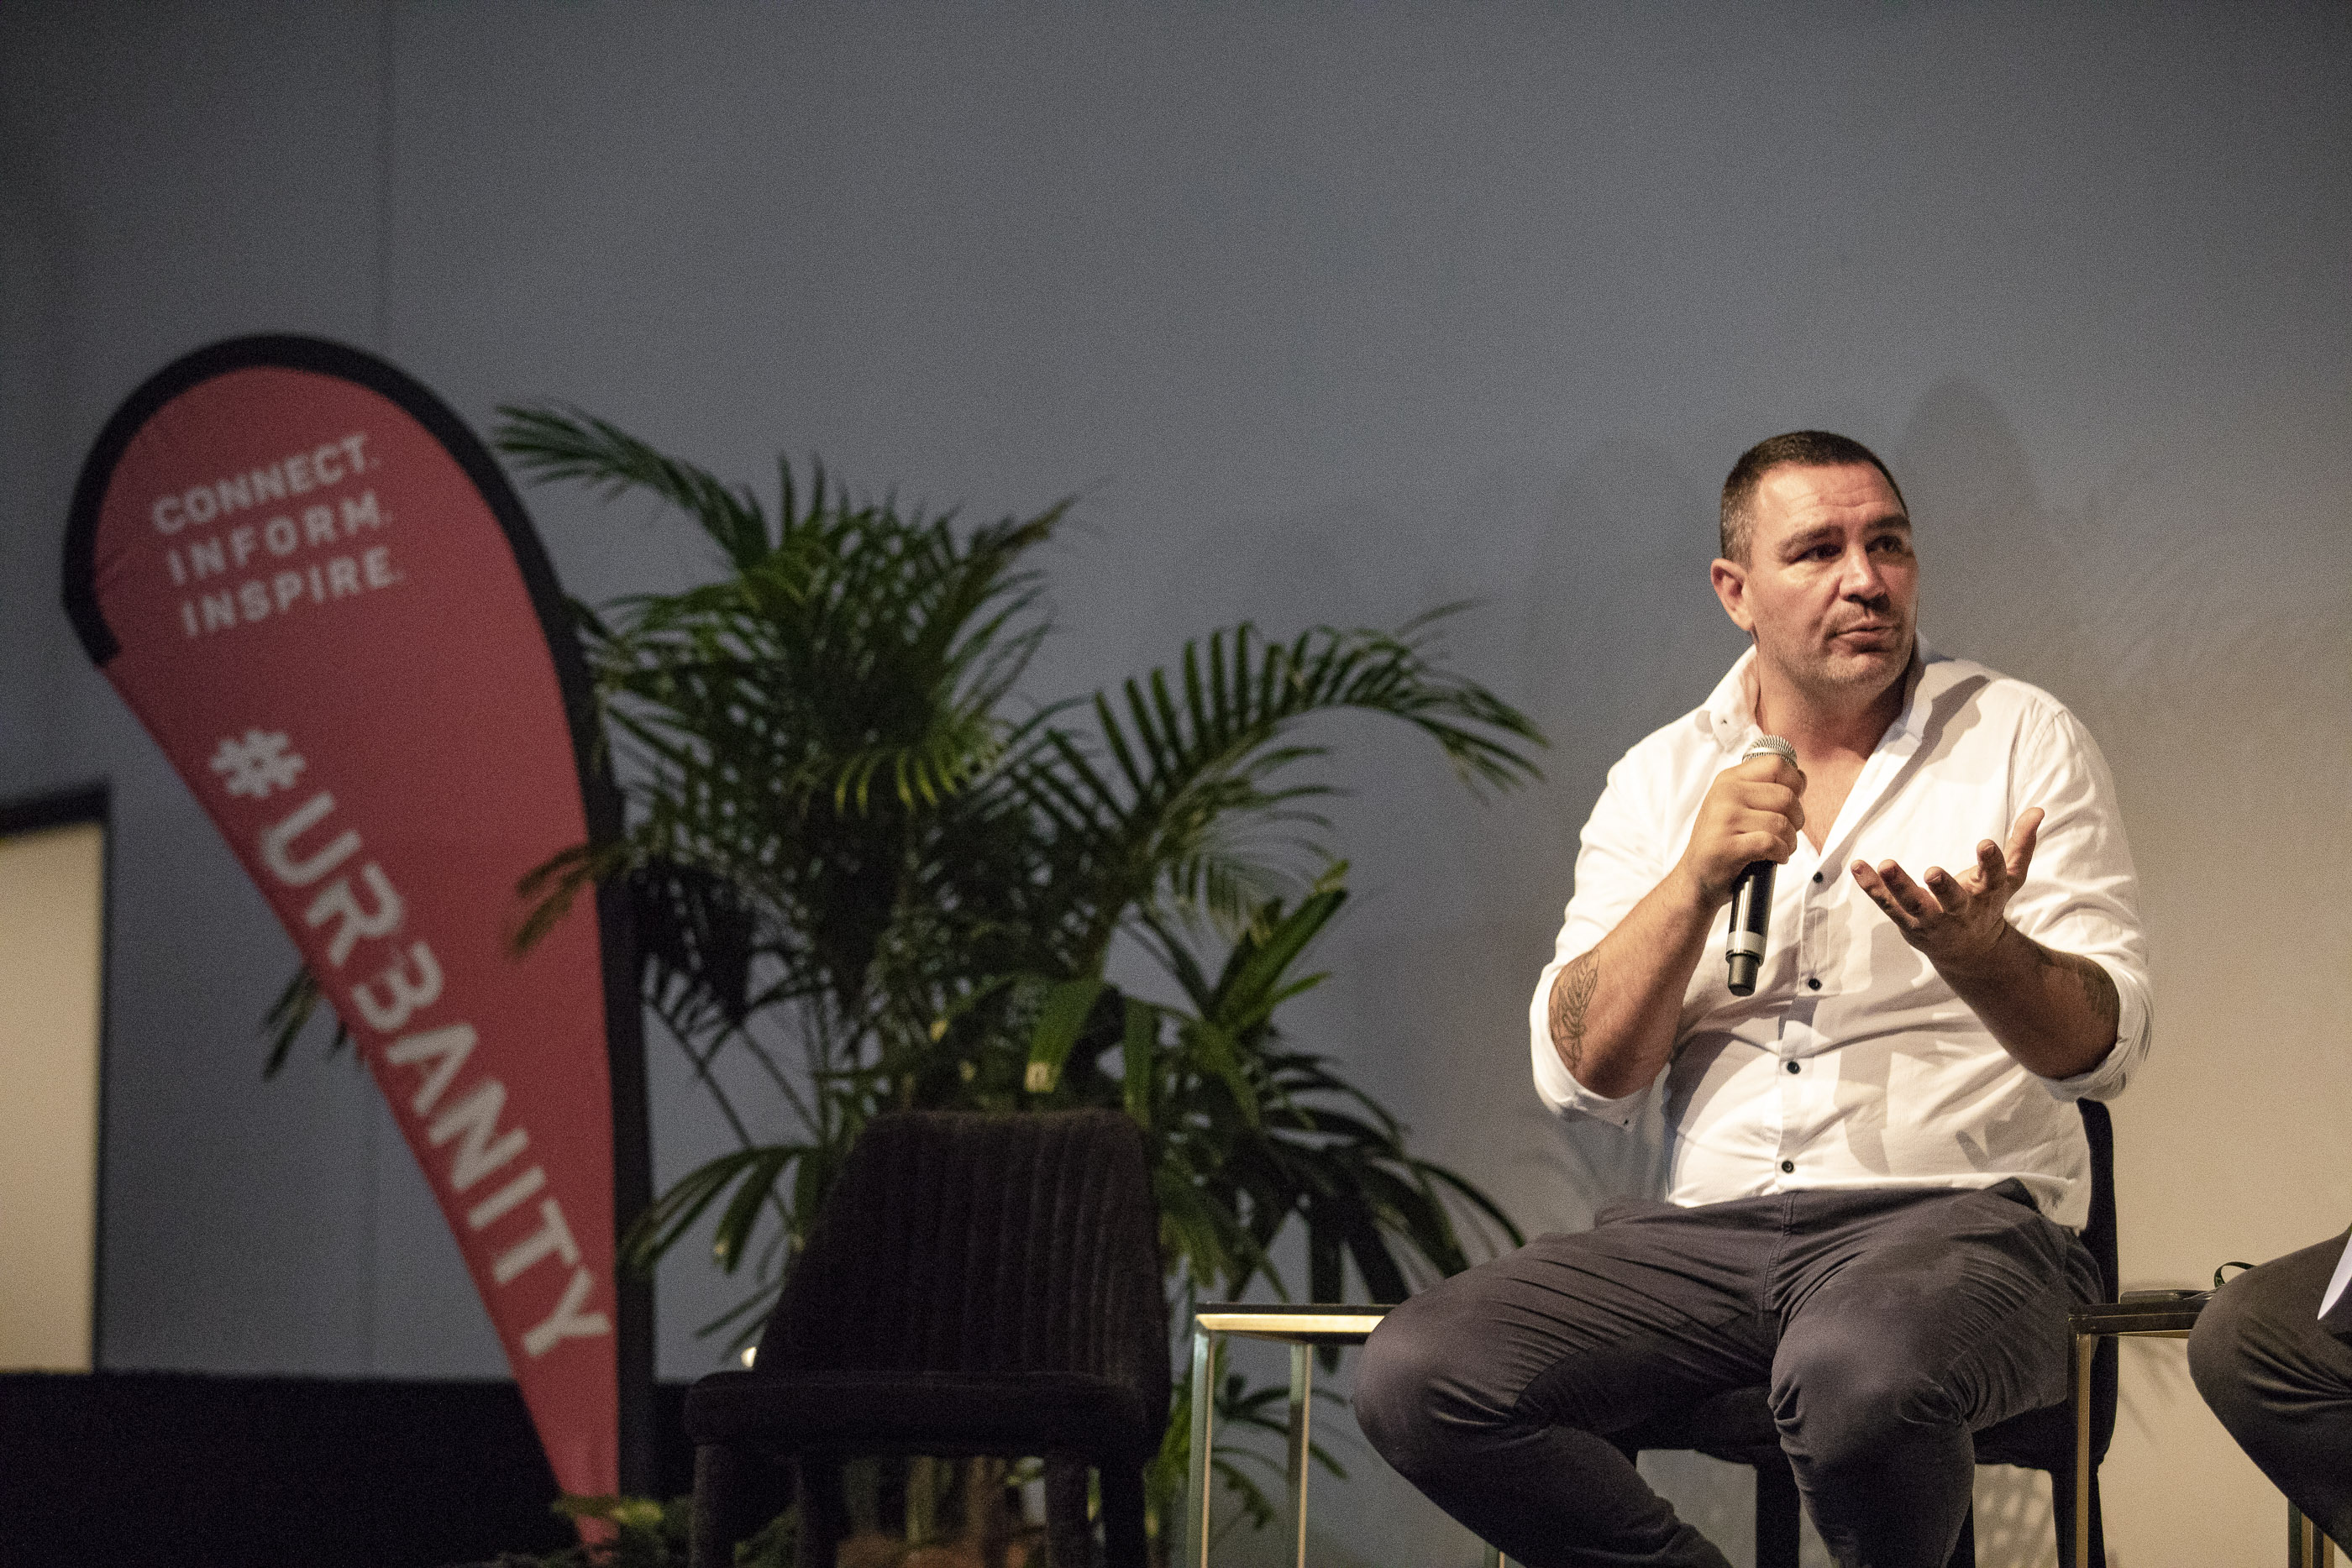 Donovan speaking at Urbanity 2018